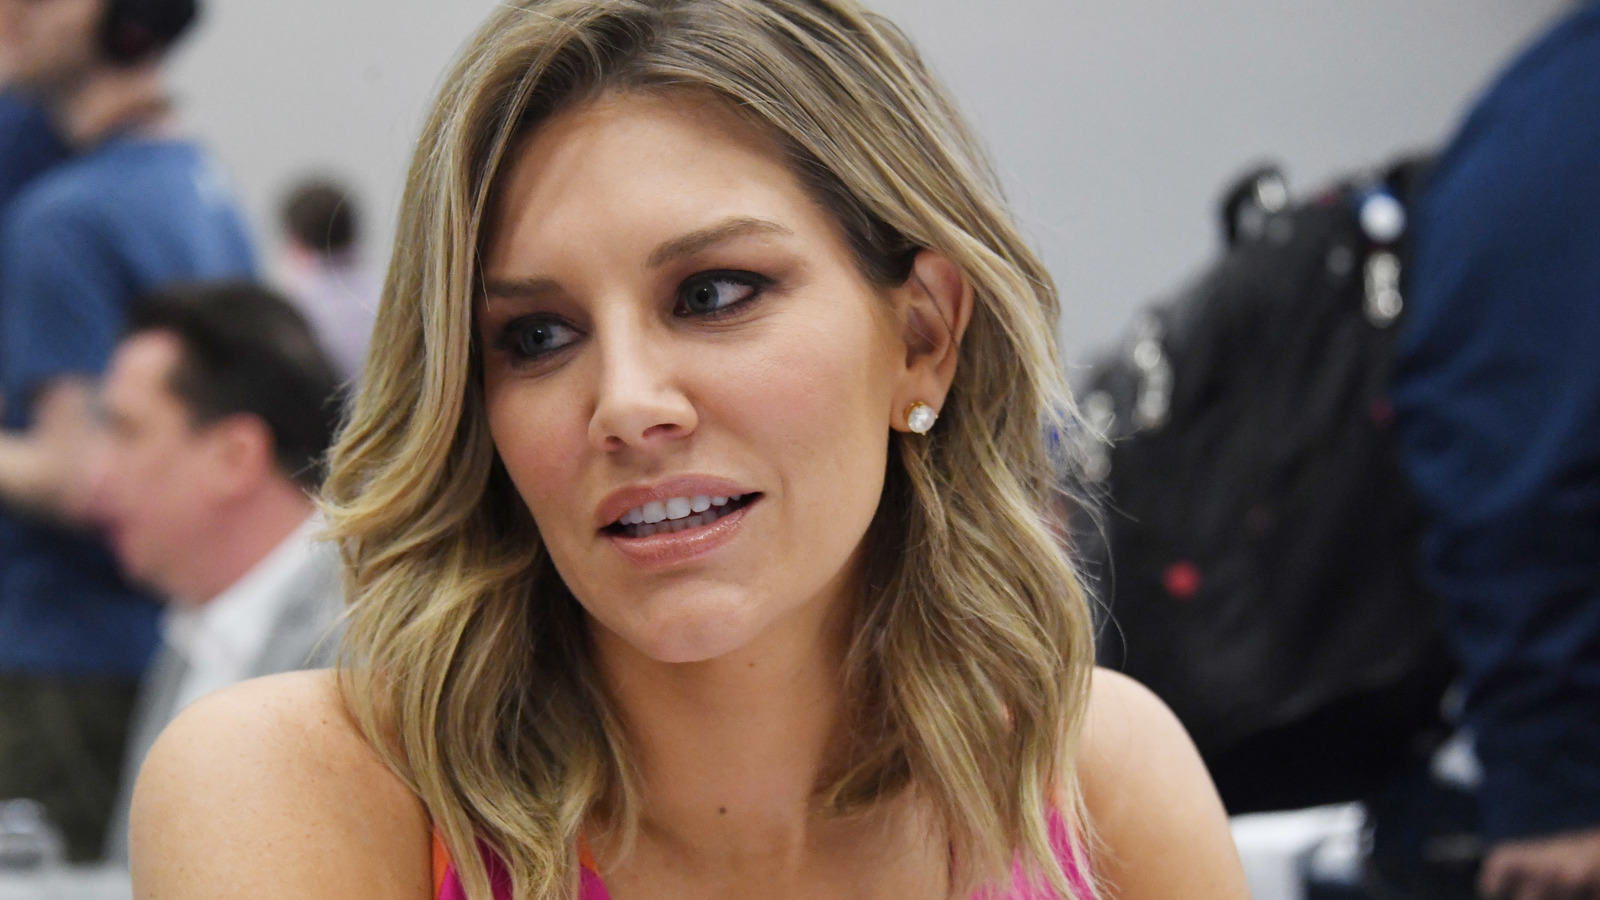 Host Charissa Thompson Seeking Legal Action Against Nude Photo Hackers Yardbarker